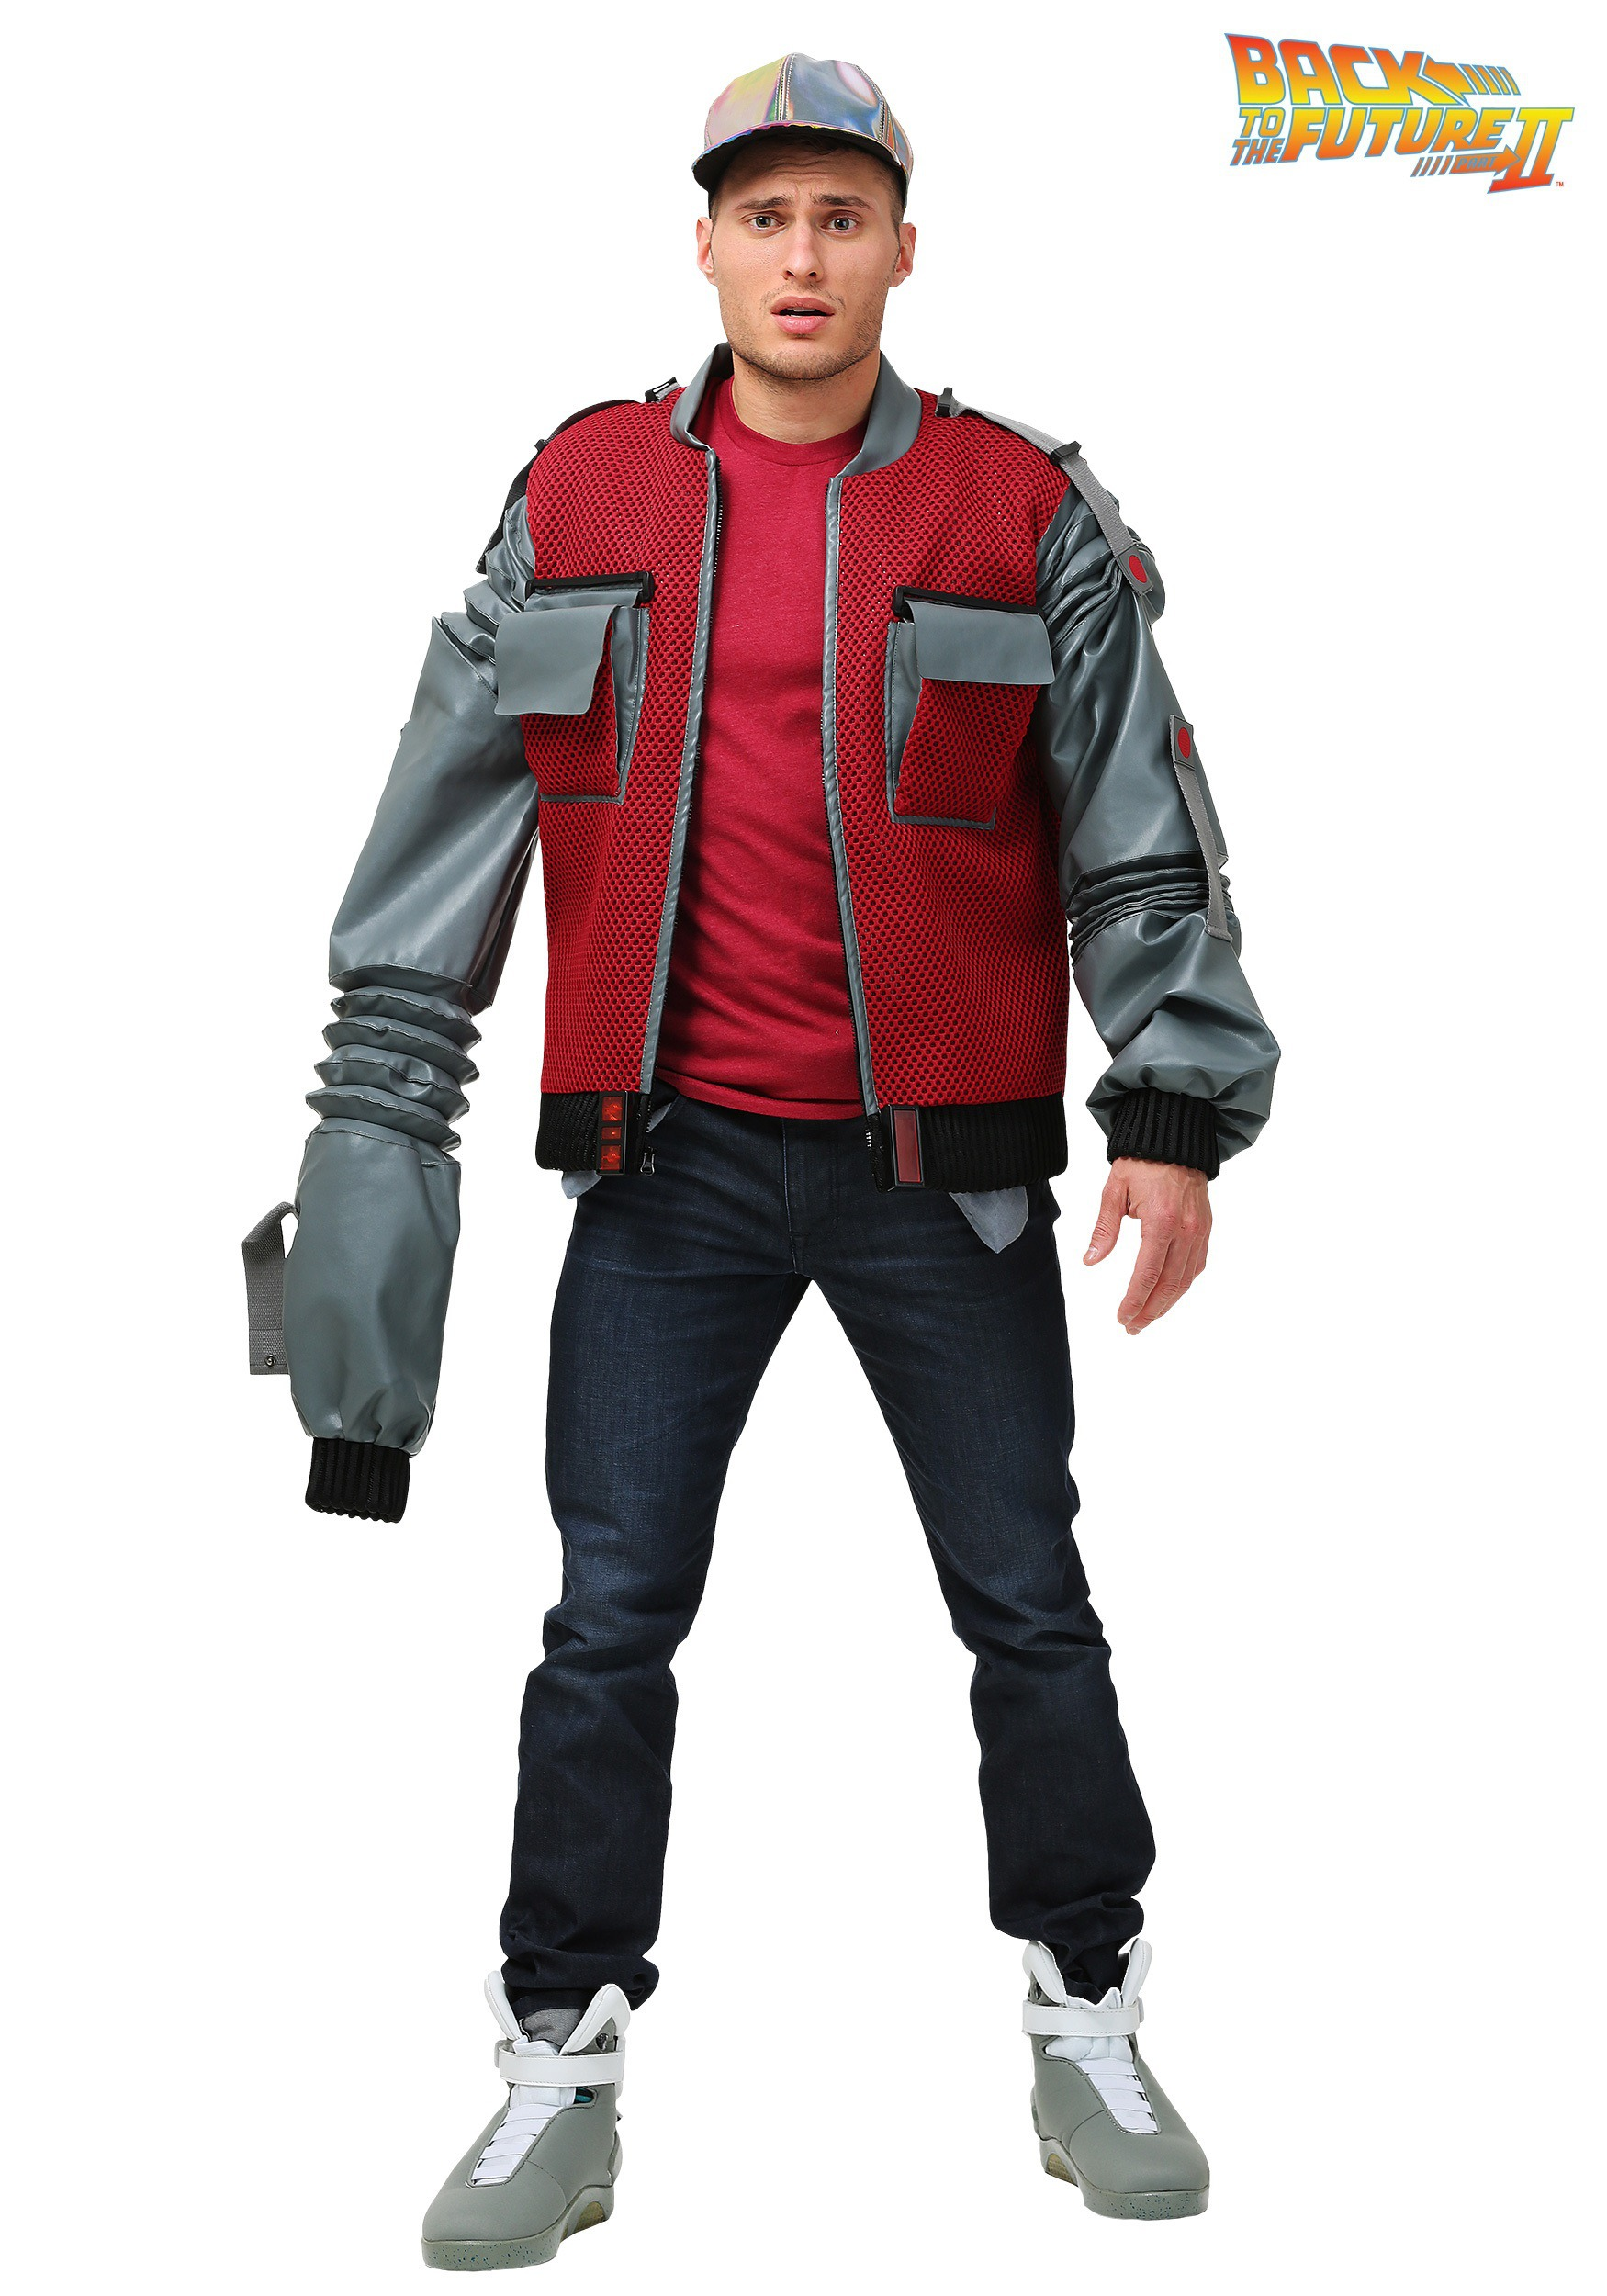 men's plus size authentic marty mcfly jacket costume from back to